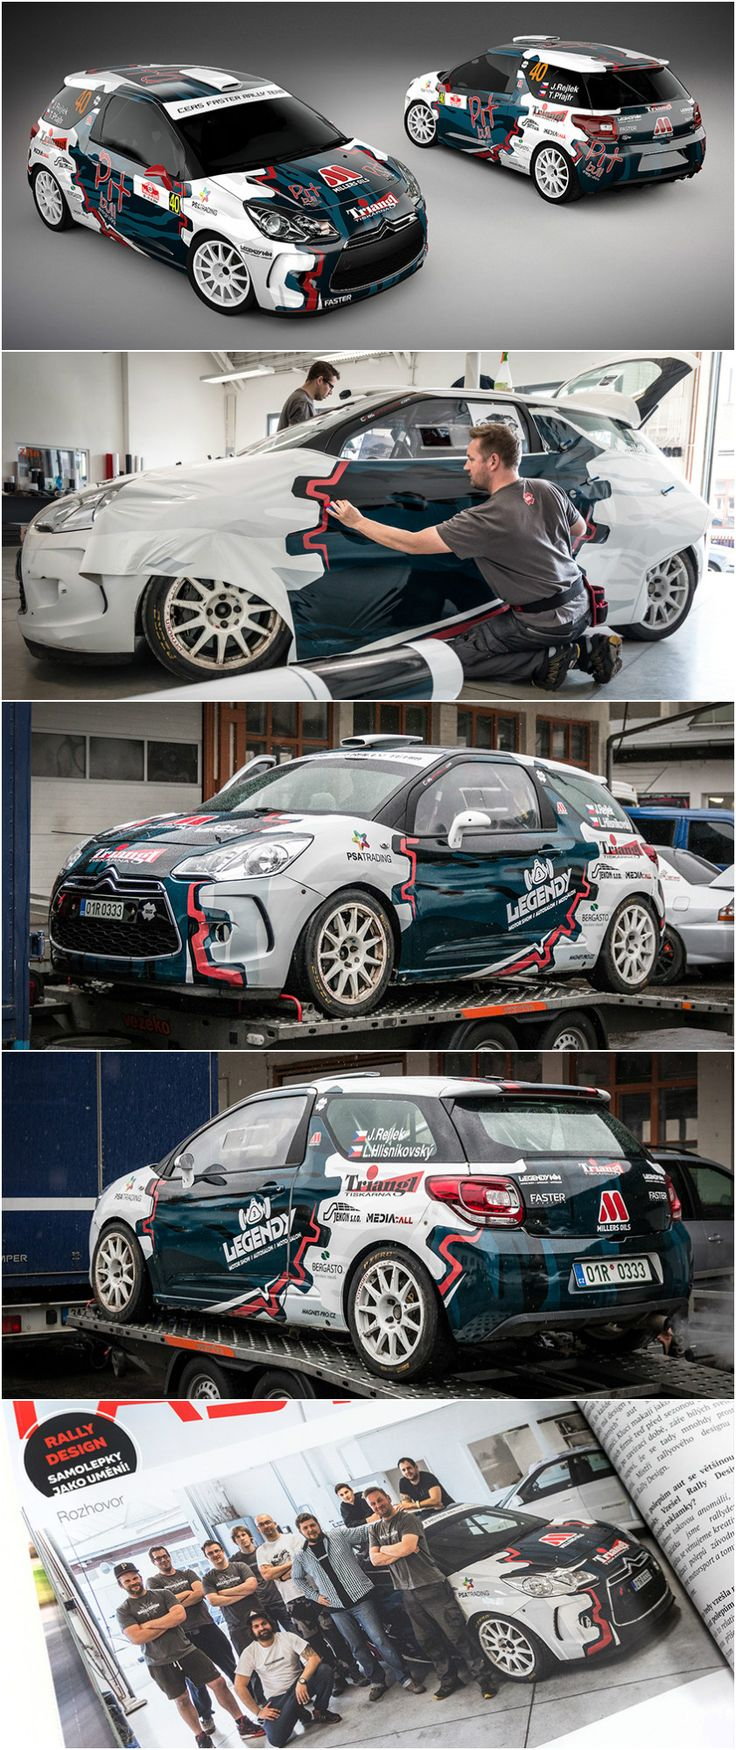 Simple car sticker design - Design And Wrap Of Citroen Ds3 For Cers Faster Rally Team Which Is Competing With